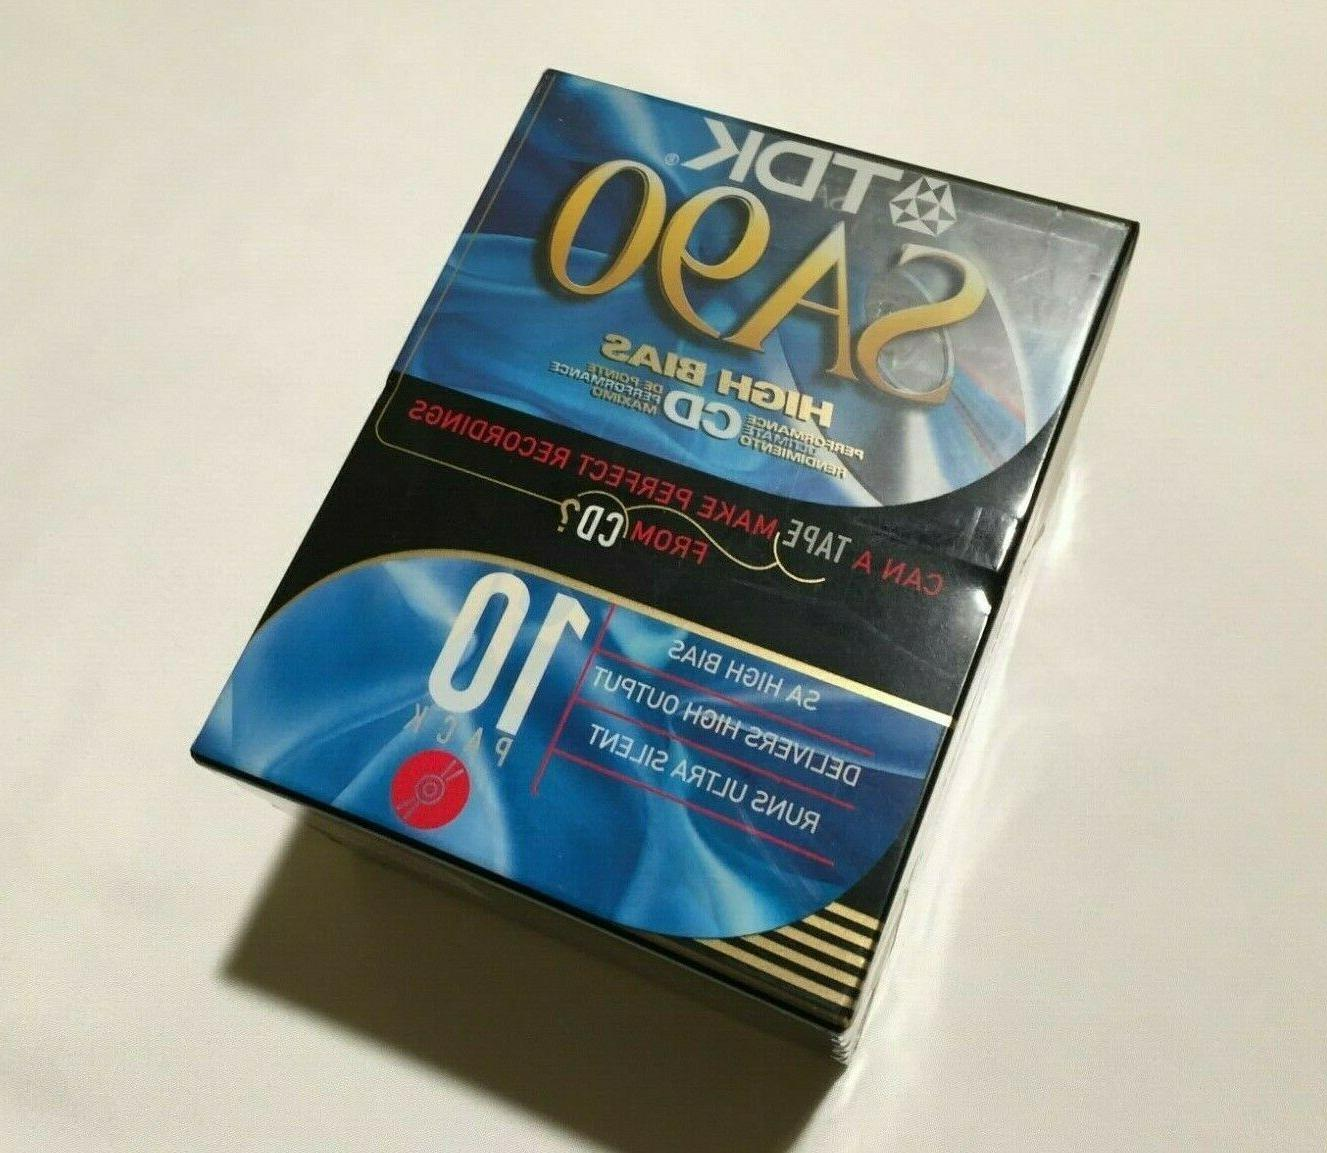 sa 90 blank audio cassette tapes high